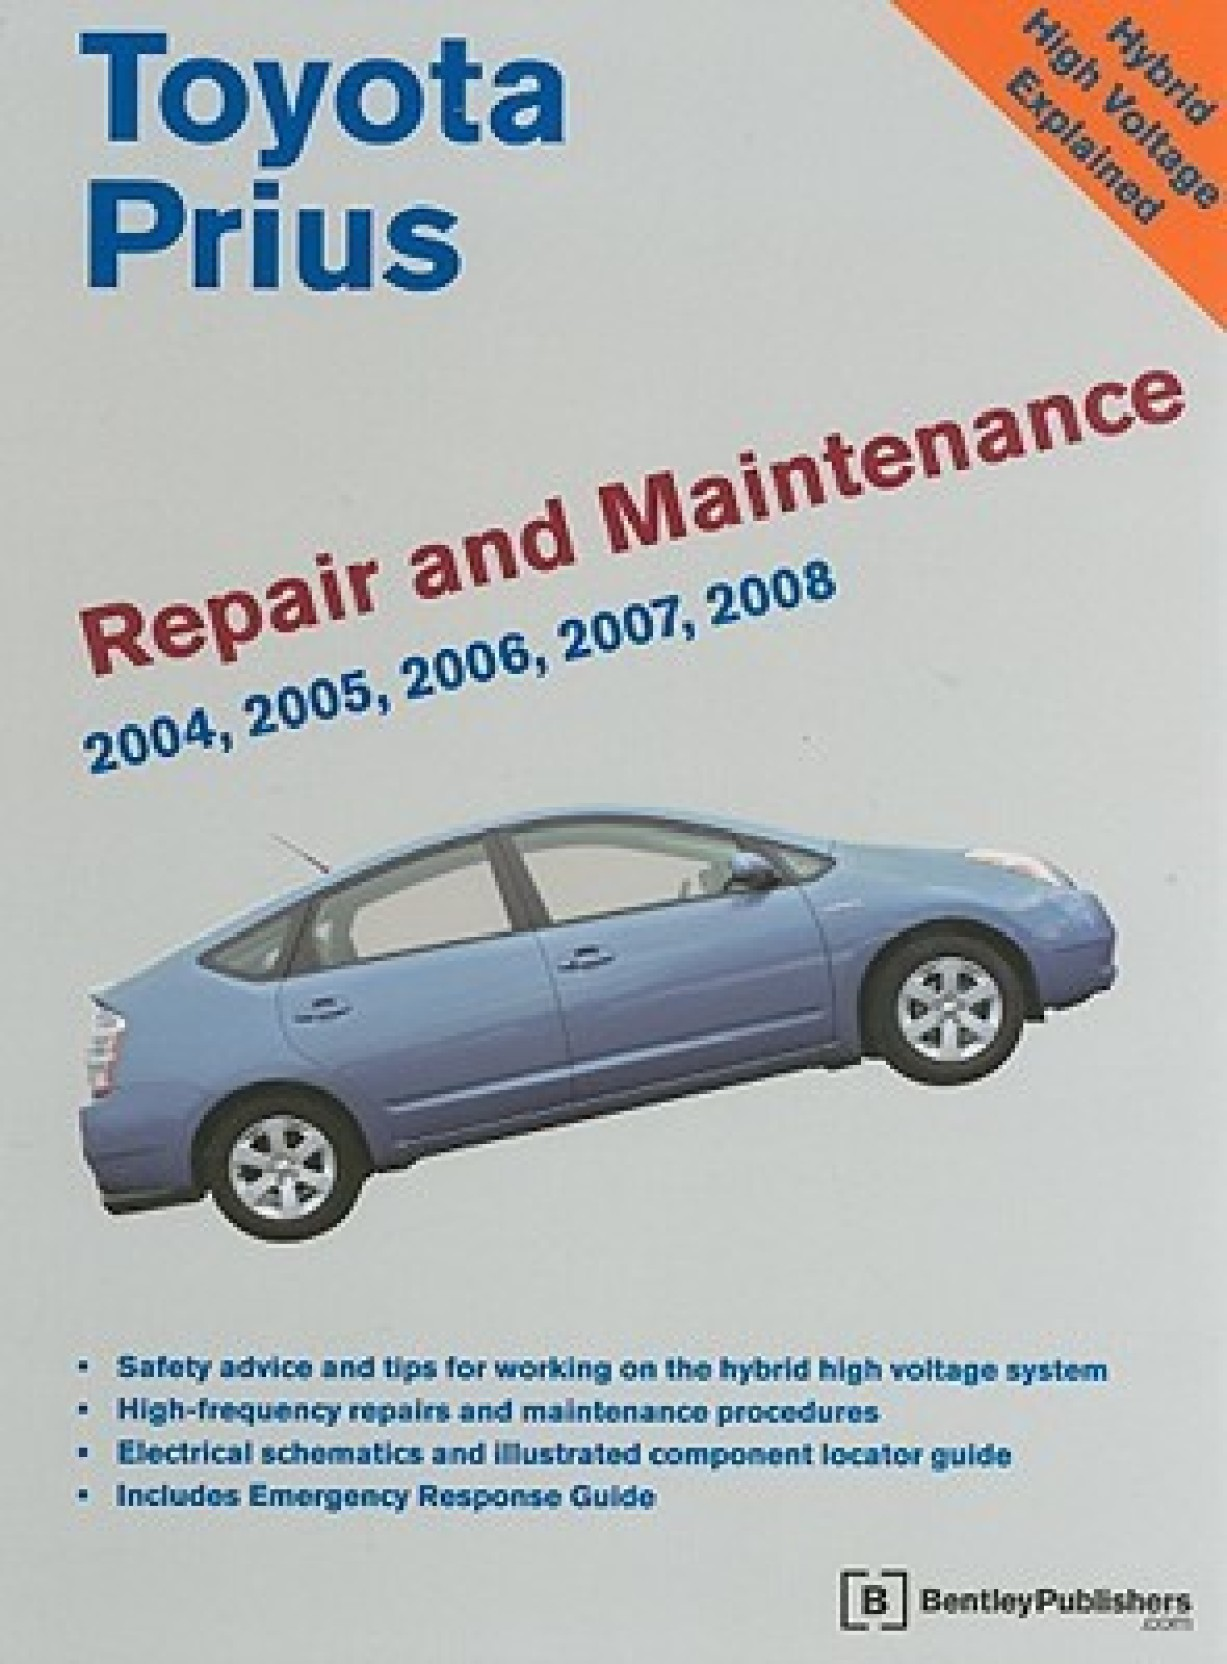 Toyota Prius Repair and Maintenance Manual: 2004-2008: Nhw20: Model and  Engine. Share